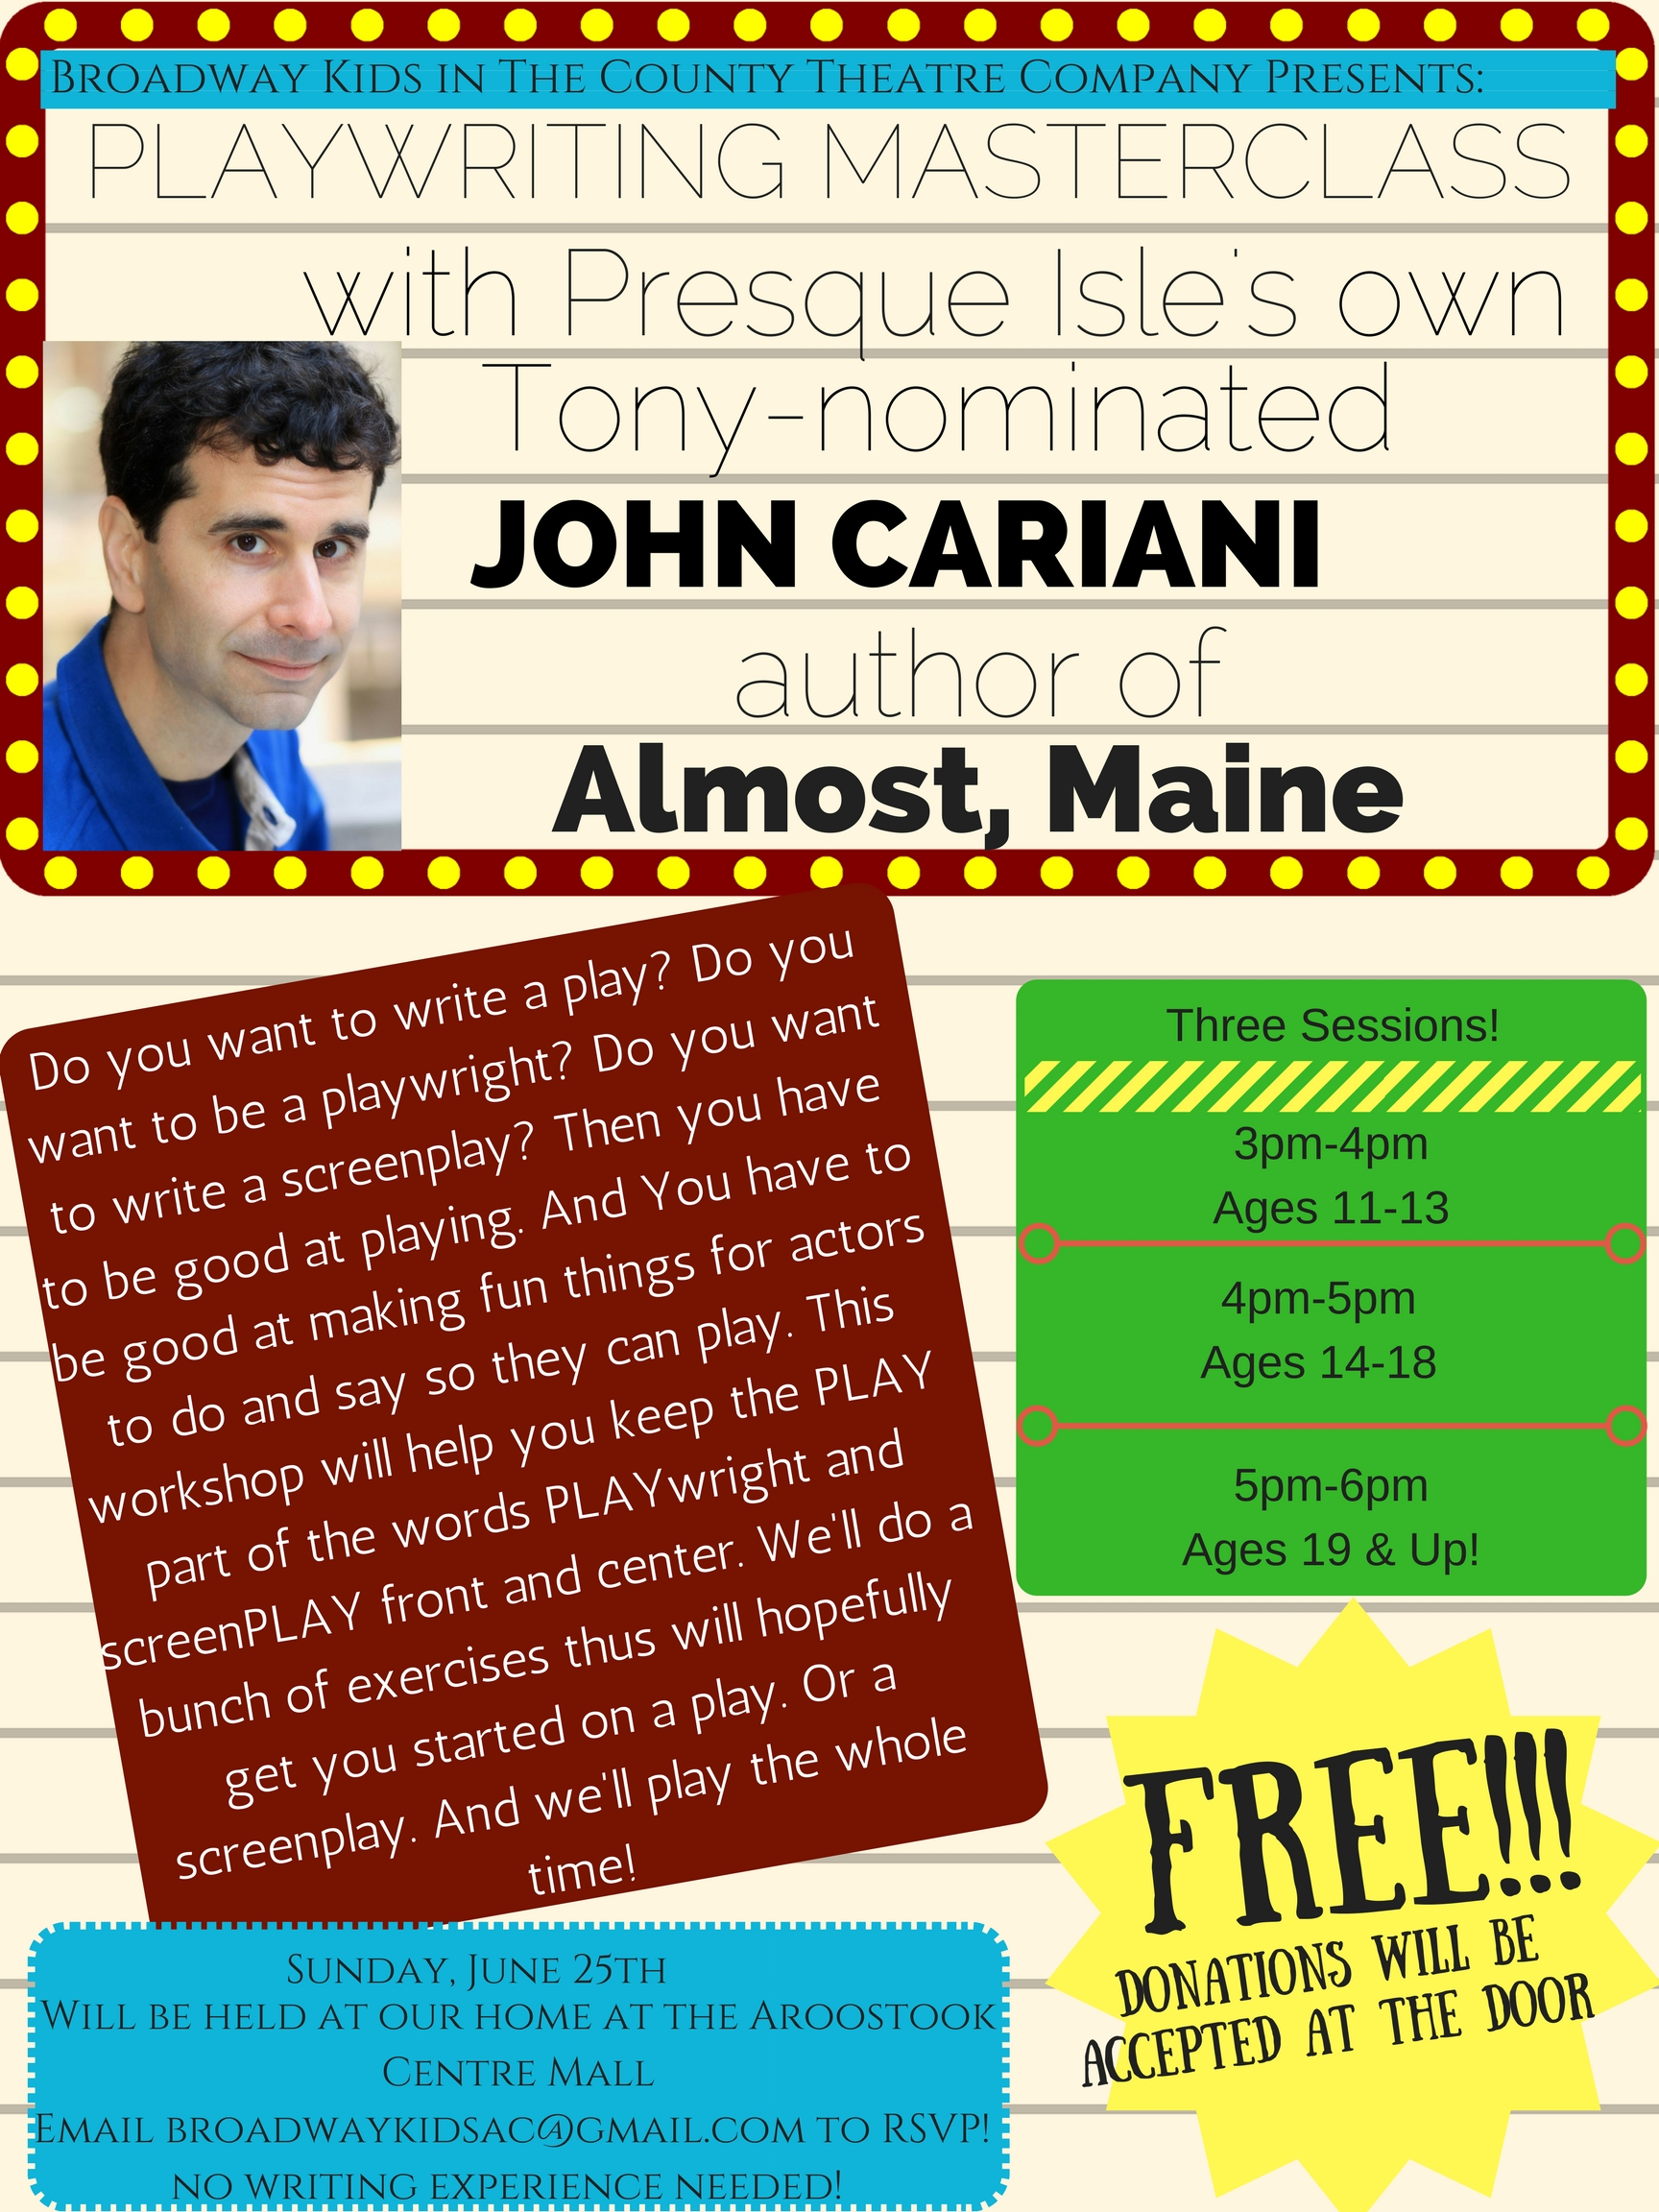 Playwriting Masterclass with John Cariani - John Cariani presented a playwright masterclass for free to interested students from ages 11 and up.Click here for photos from the event!